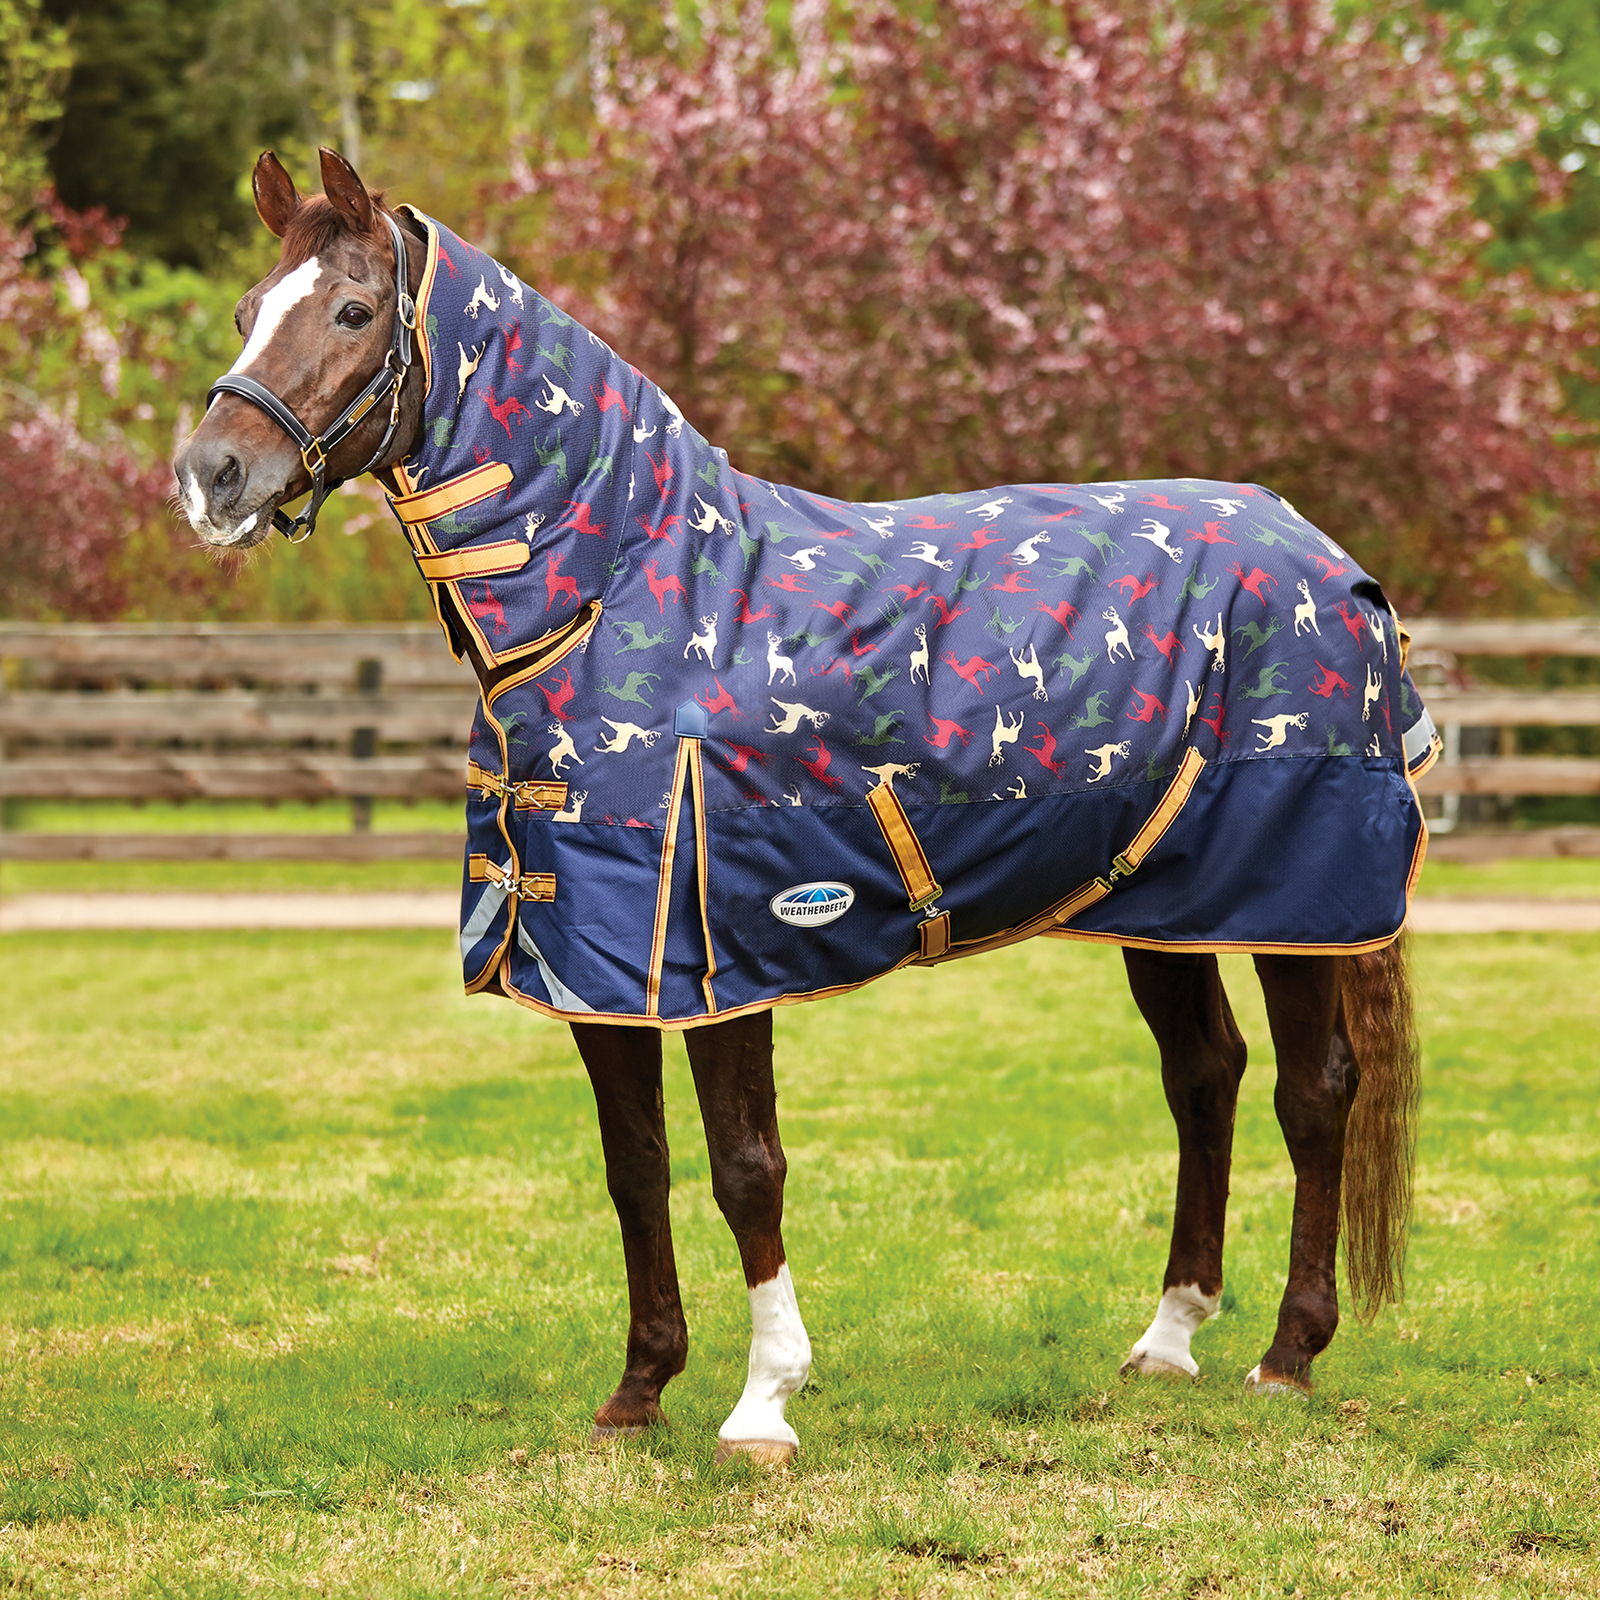 Heavyweight Turnout Rugs